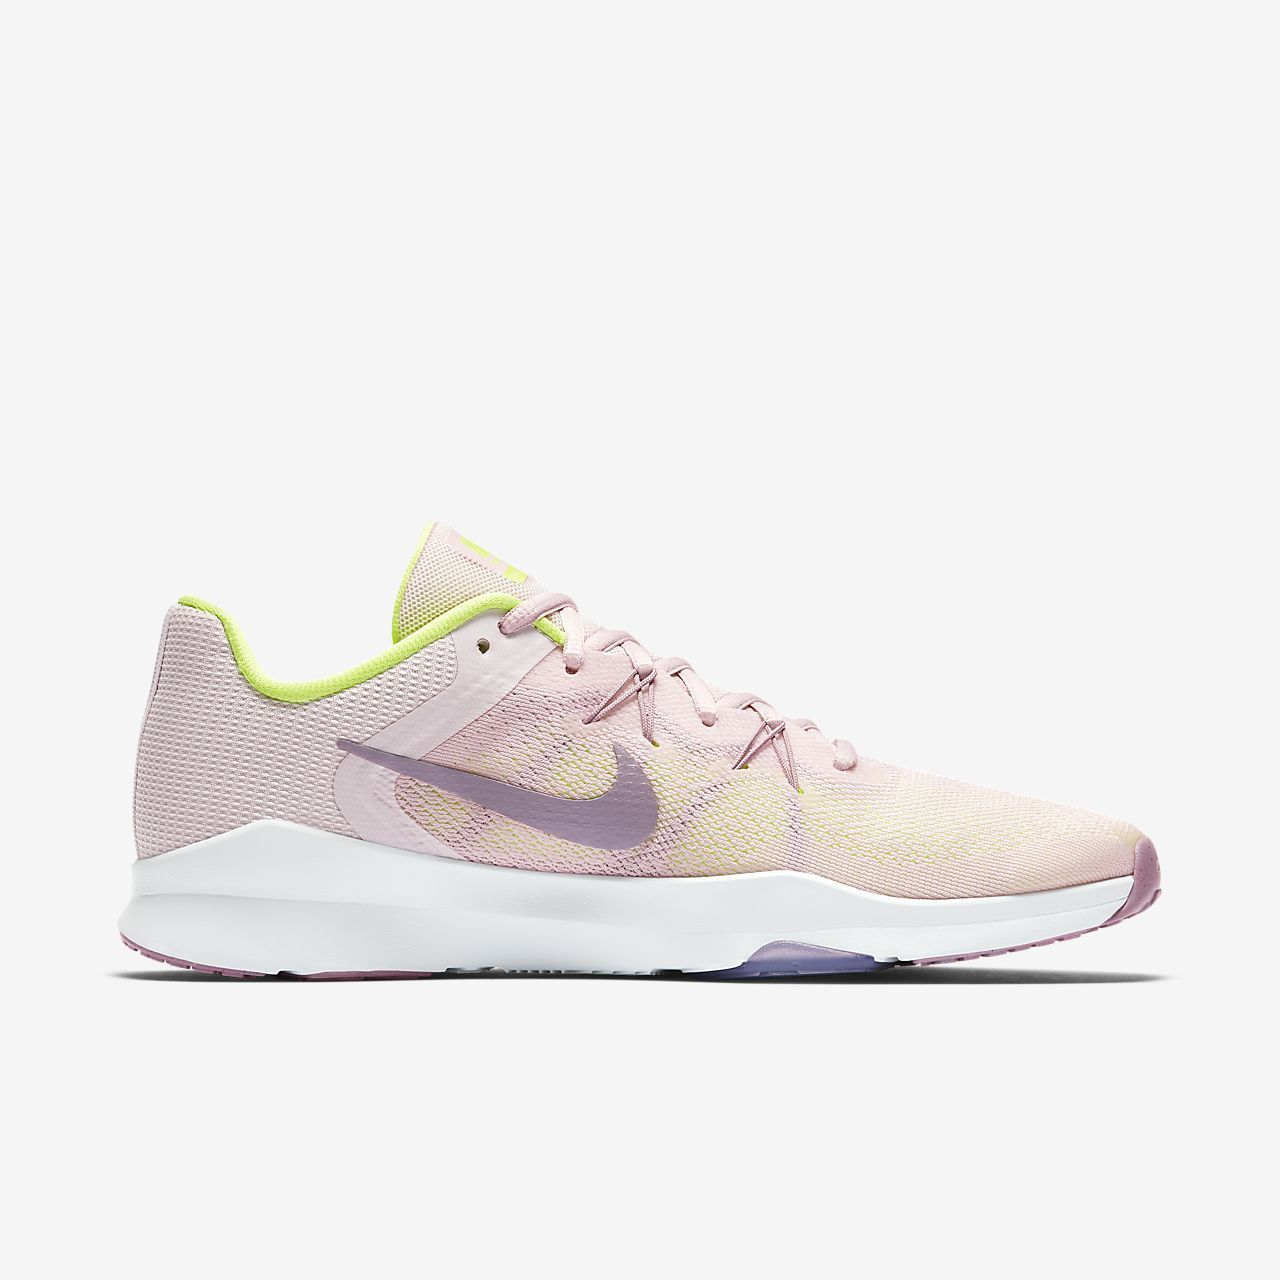 86e7fa32a4cf3 Nike Zoom Condition TR 2 Women s Training Shoe